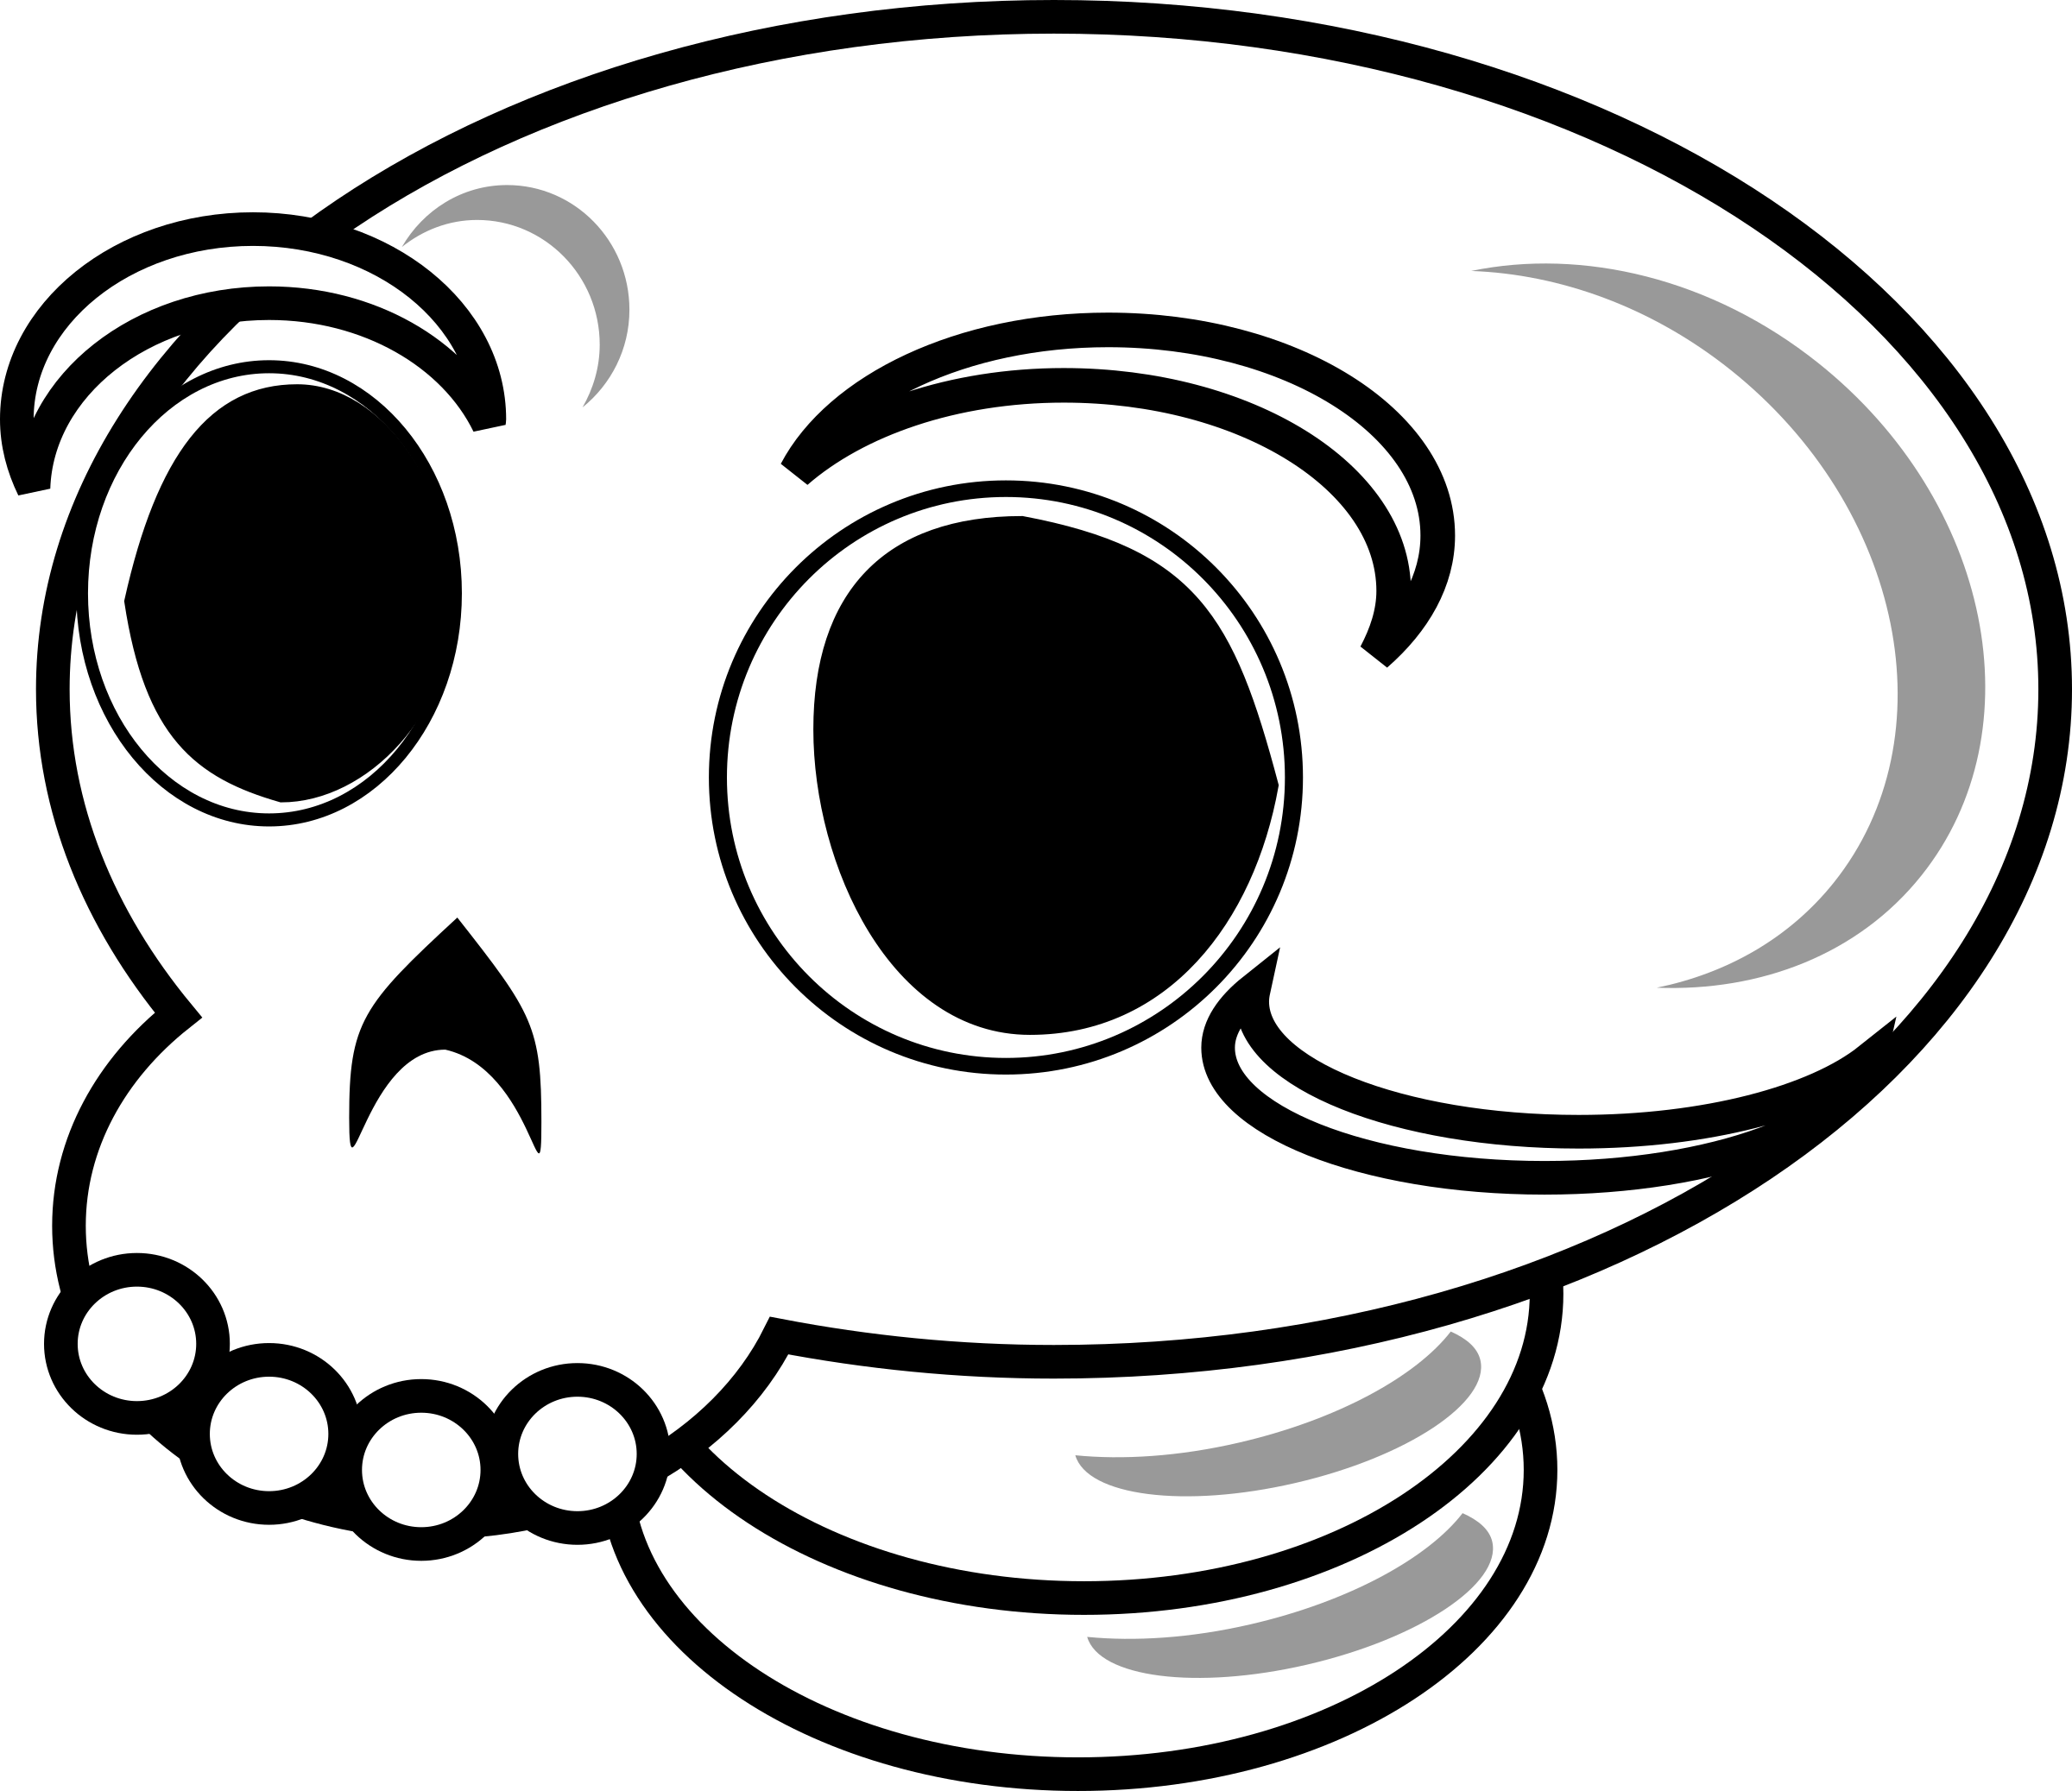 skull charles mccolm 01 by chaslinux